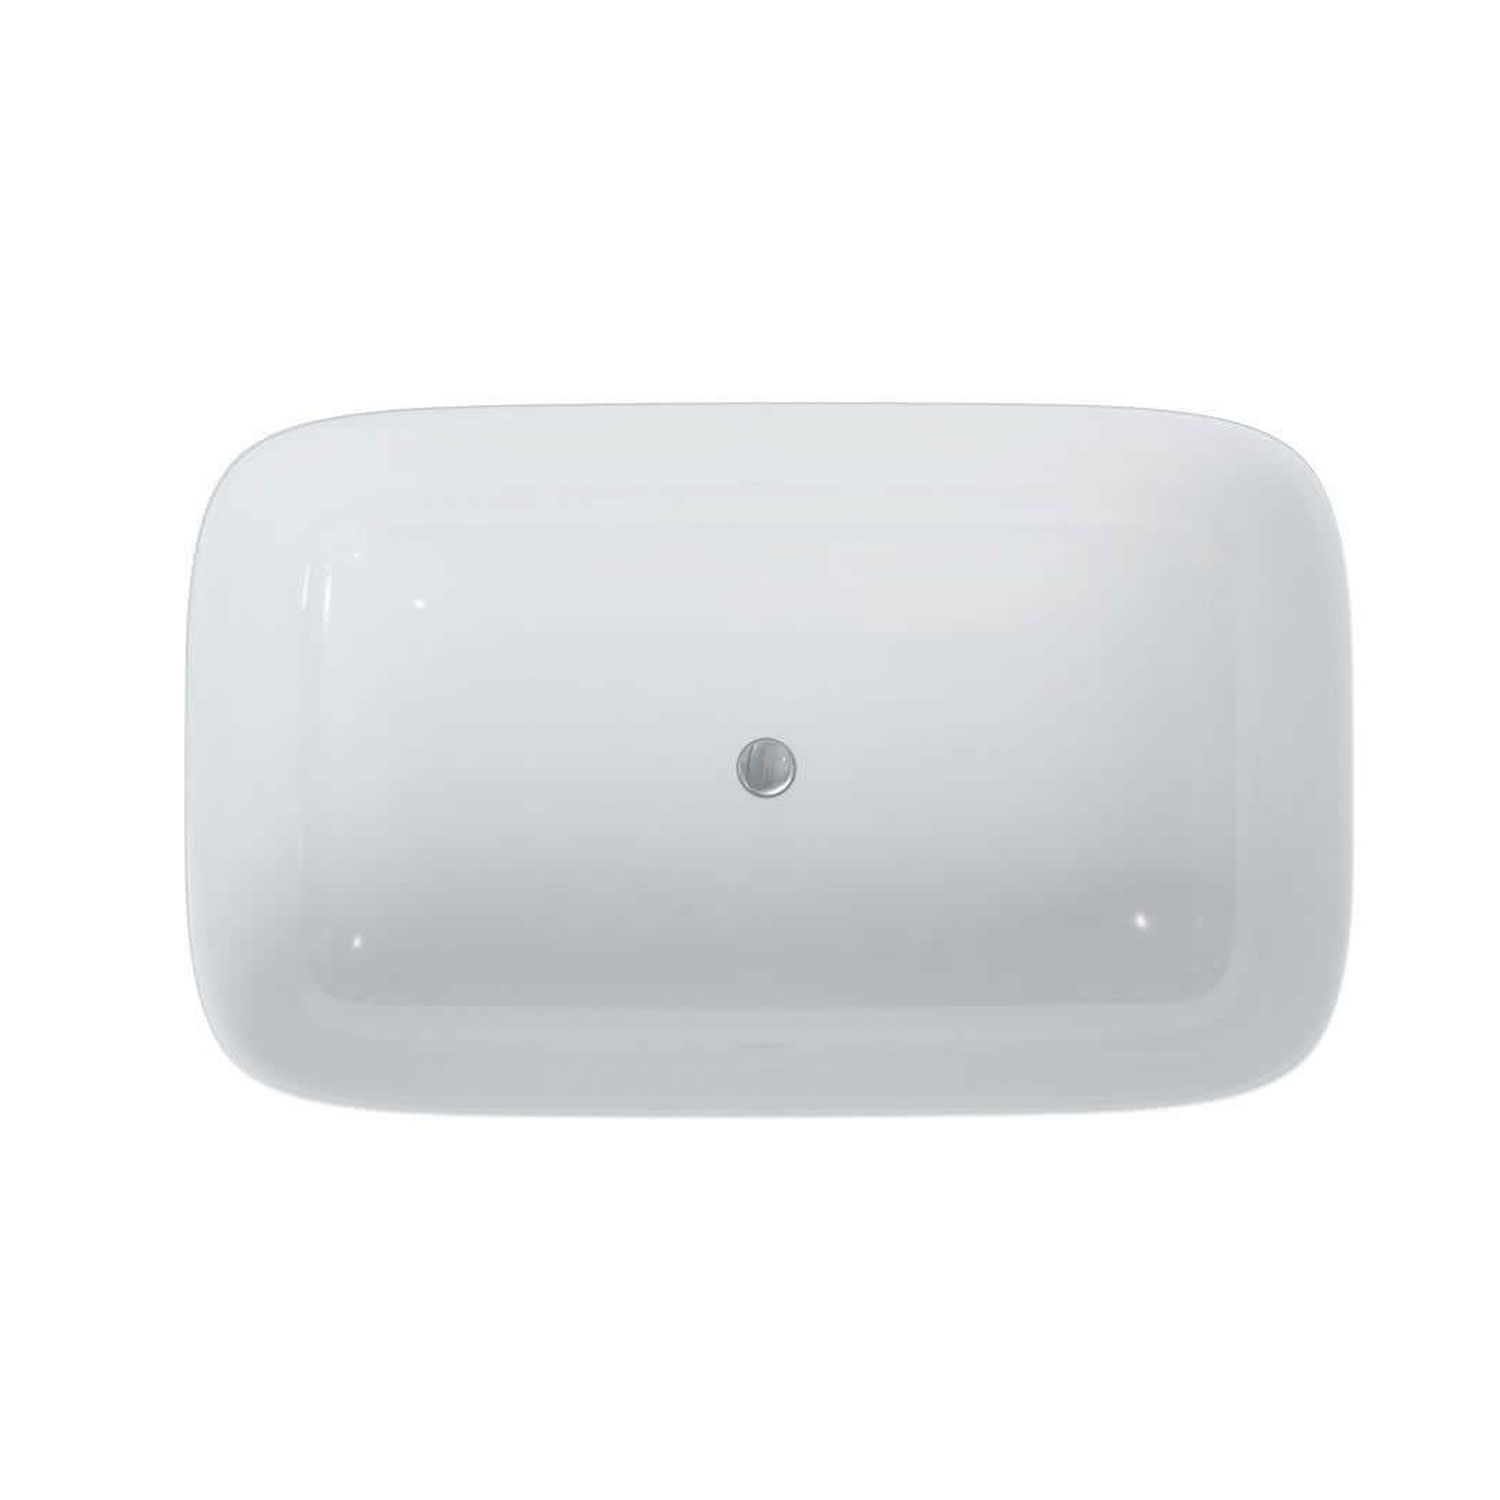 Clearwater Duo Freestanding Bath 1550mm x 950mm - Clear Stone